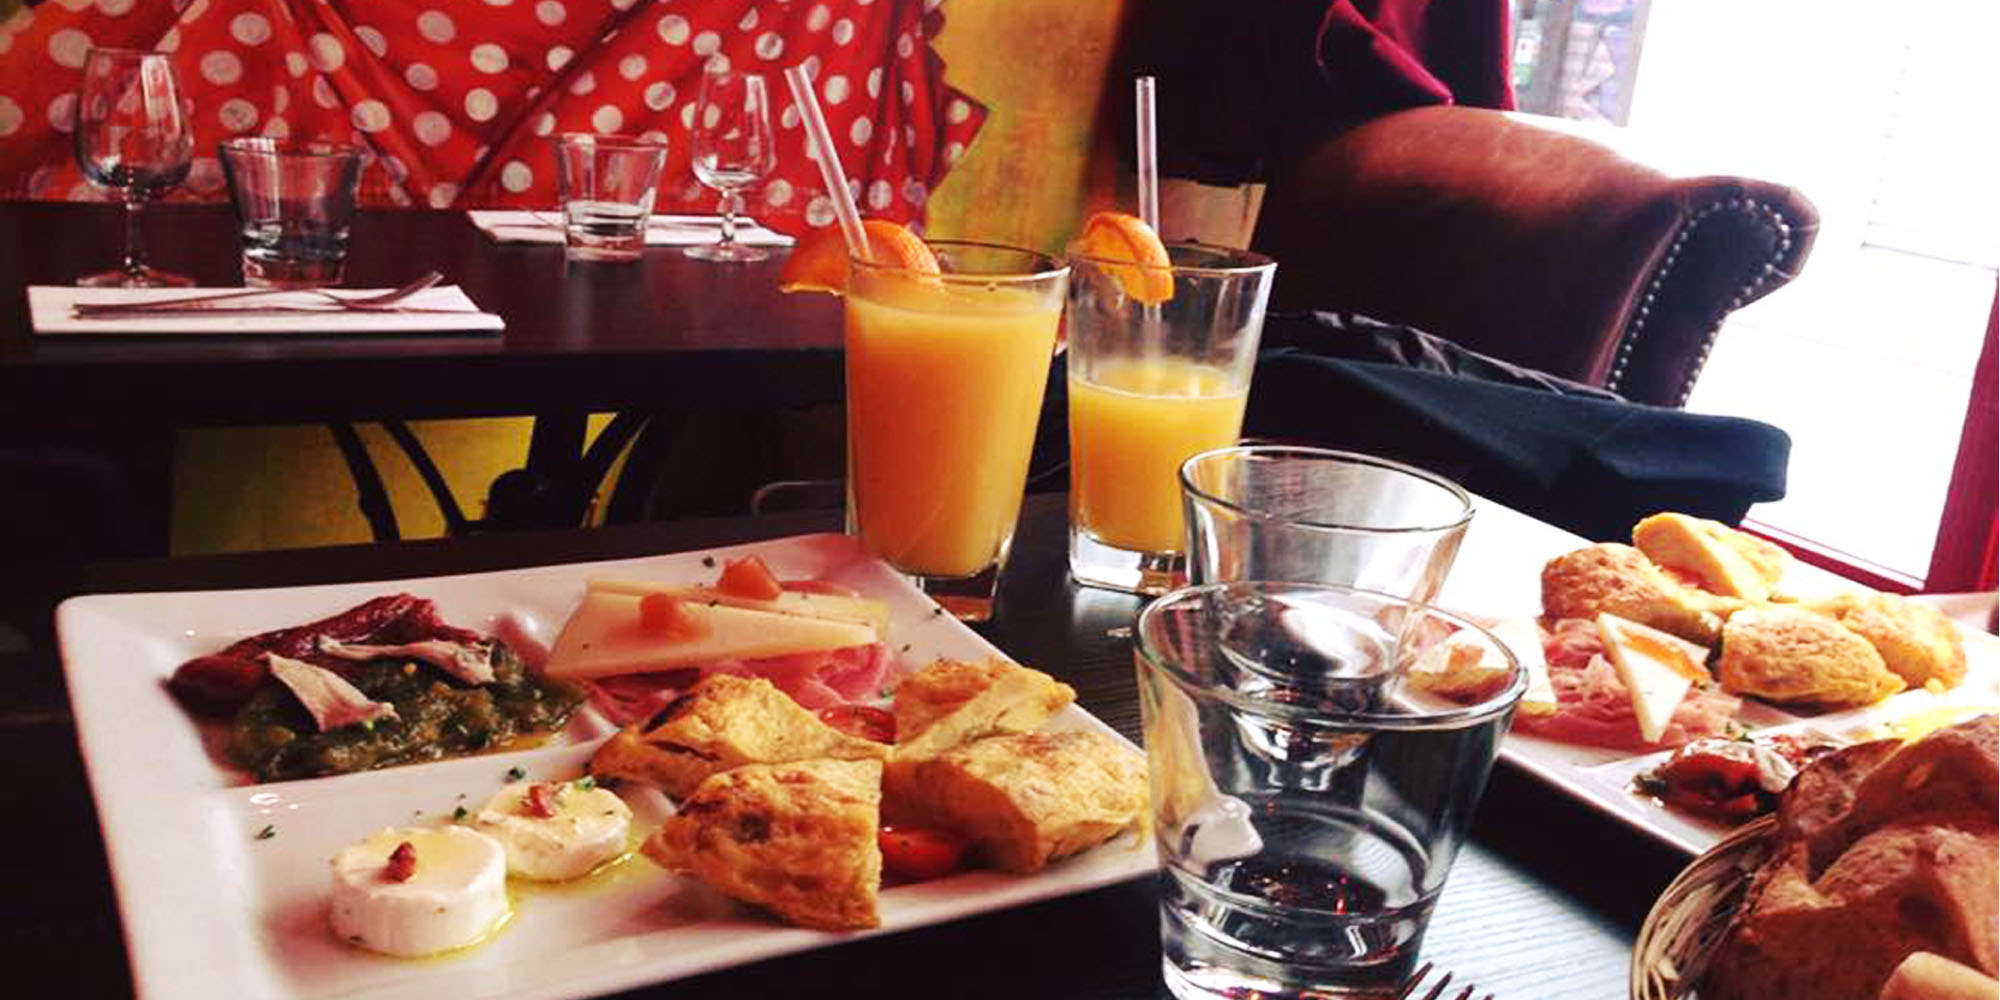 Brunch La Pirada (75011 Paris)